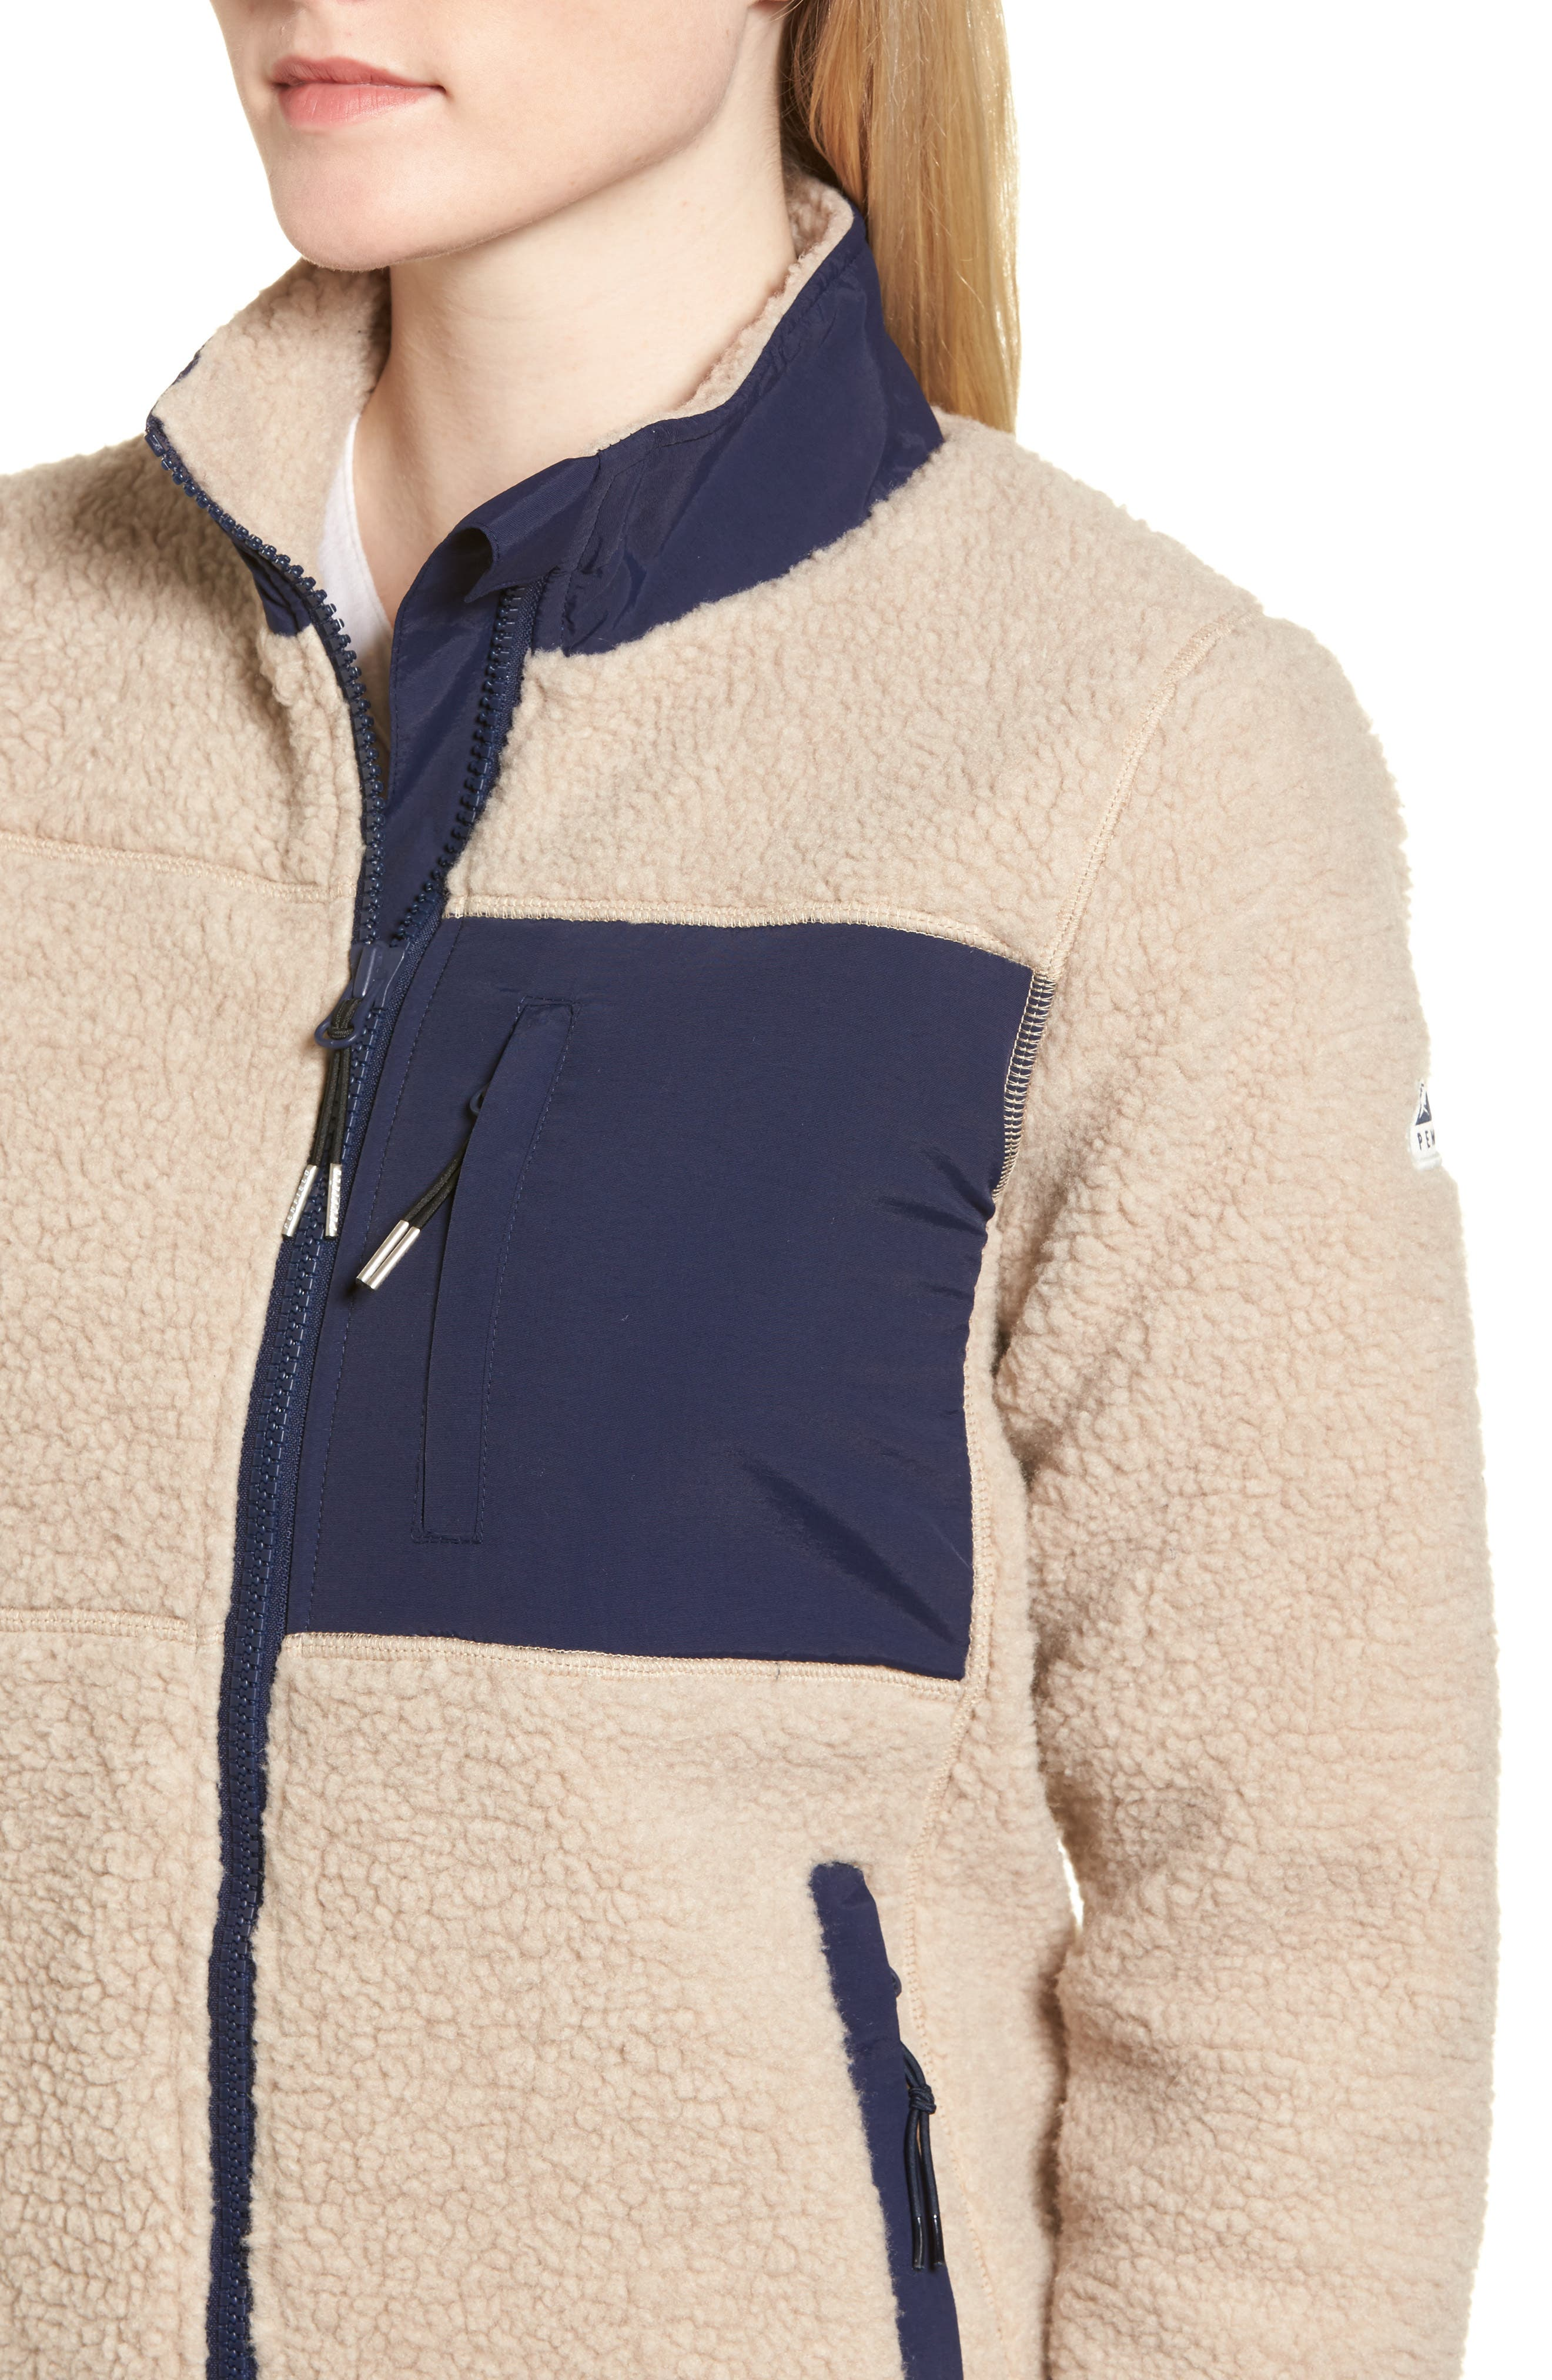 Mattawa Fleece Jacket,                             Alternate thumbnail 4, color,                             252